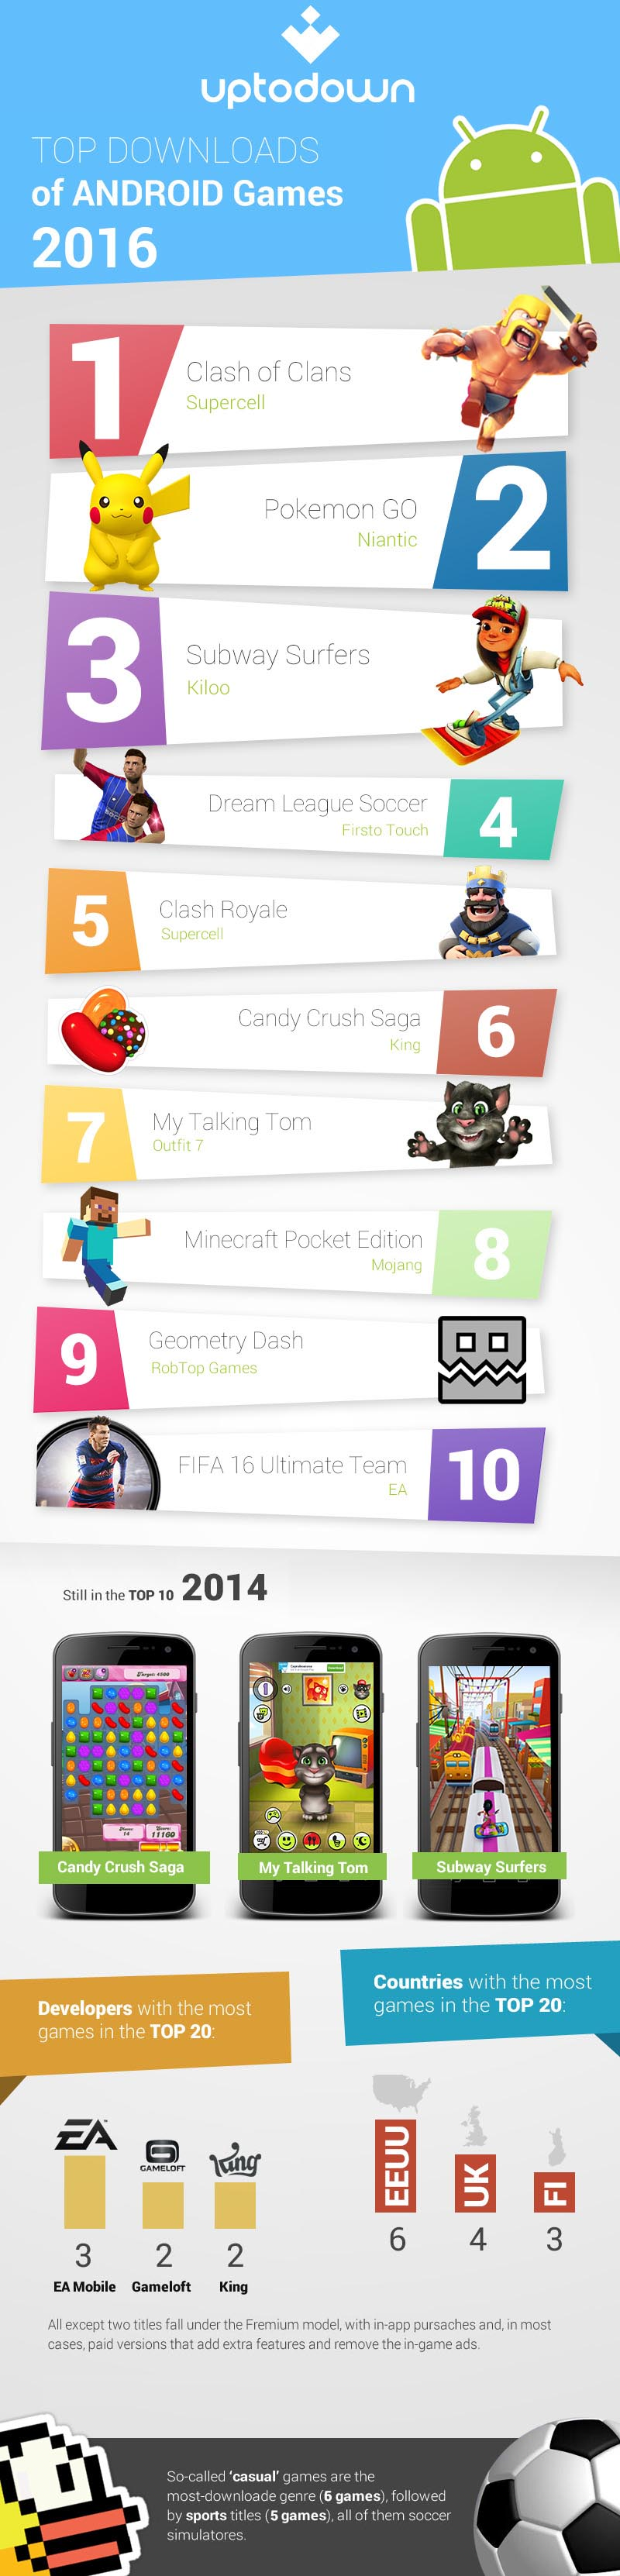 top android games 2016 Uptodown's top game downloads of 2016